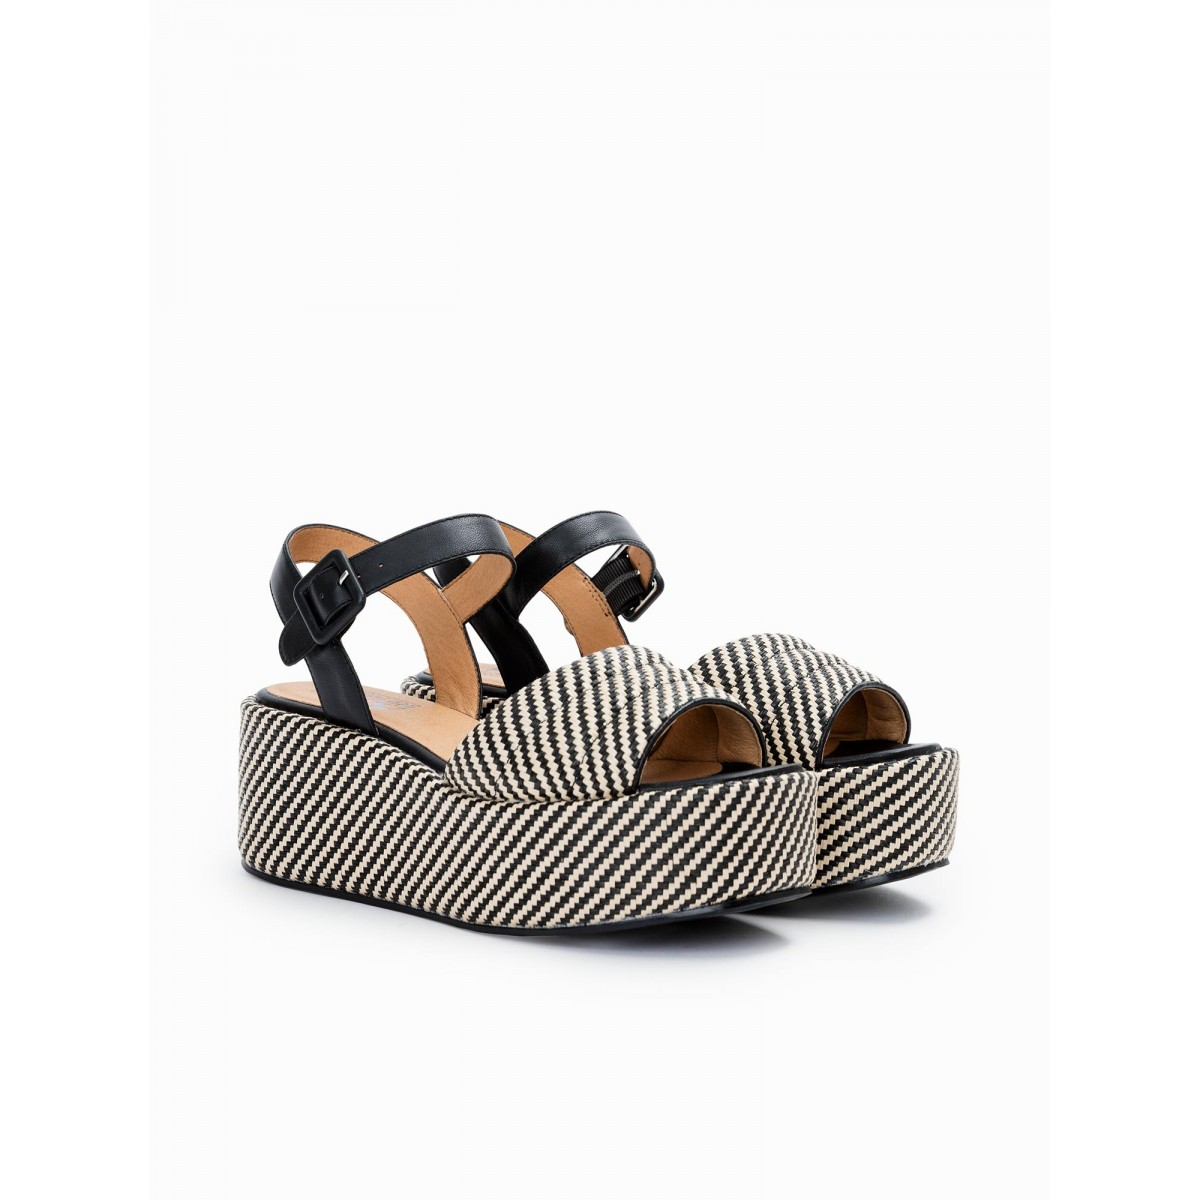 No Name BETTY SANDAL - RAPHIA - BLACK-NATURAL